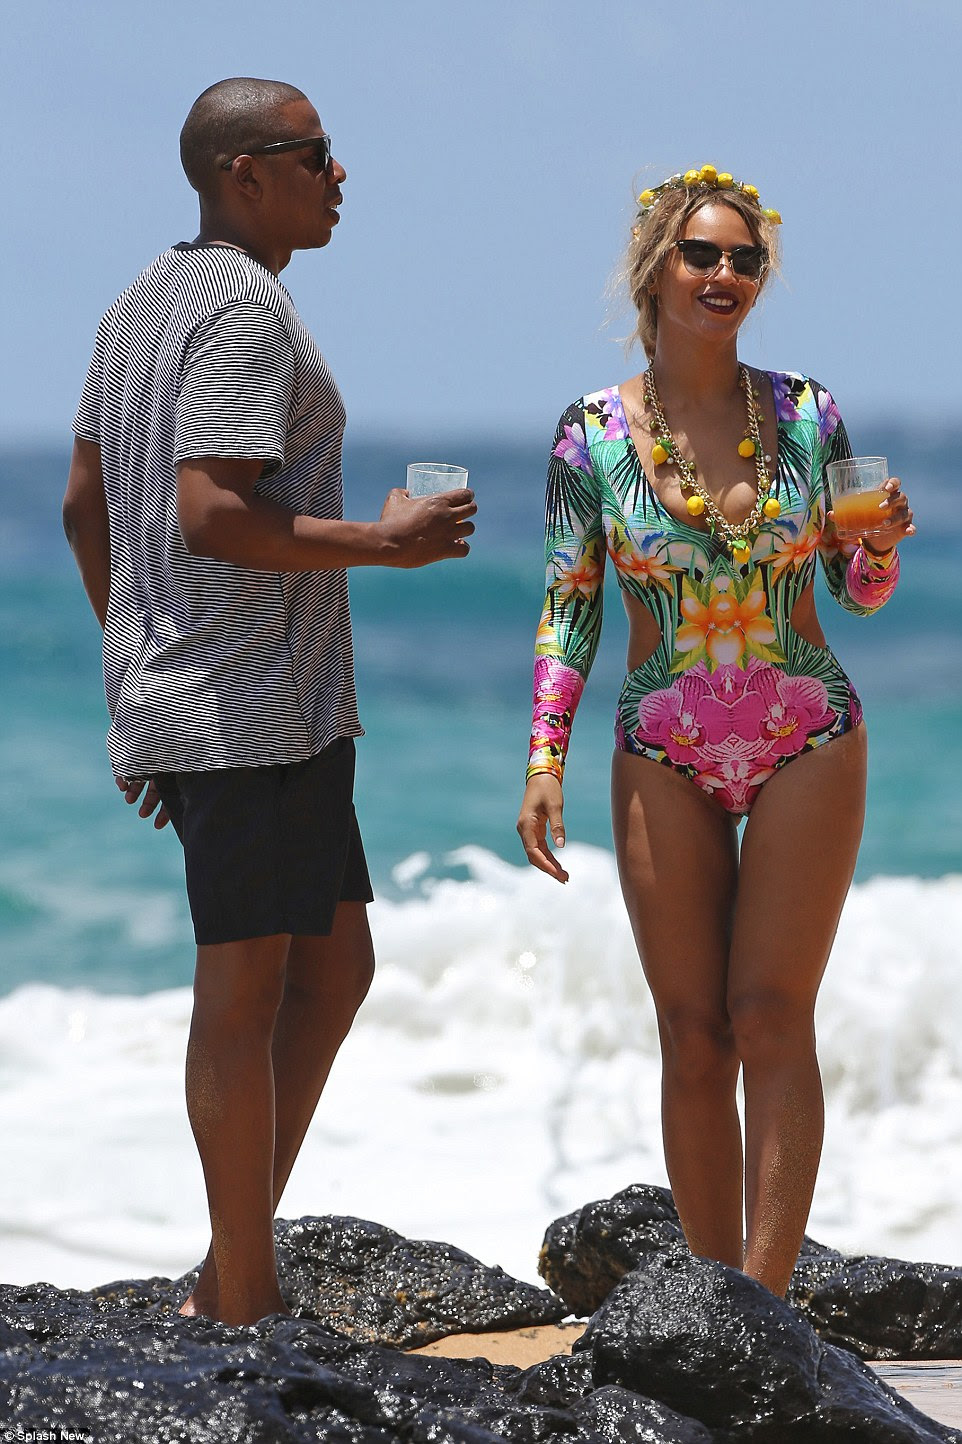 When life gives you lemons: Beyonce was all smiles as they hung out on the beach together